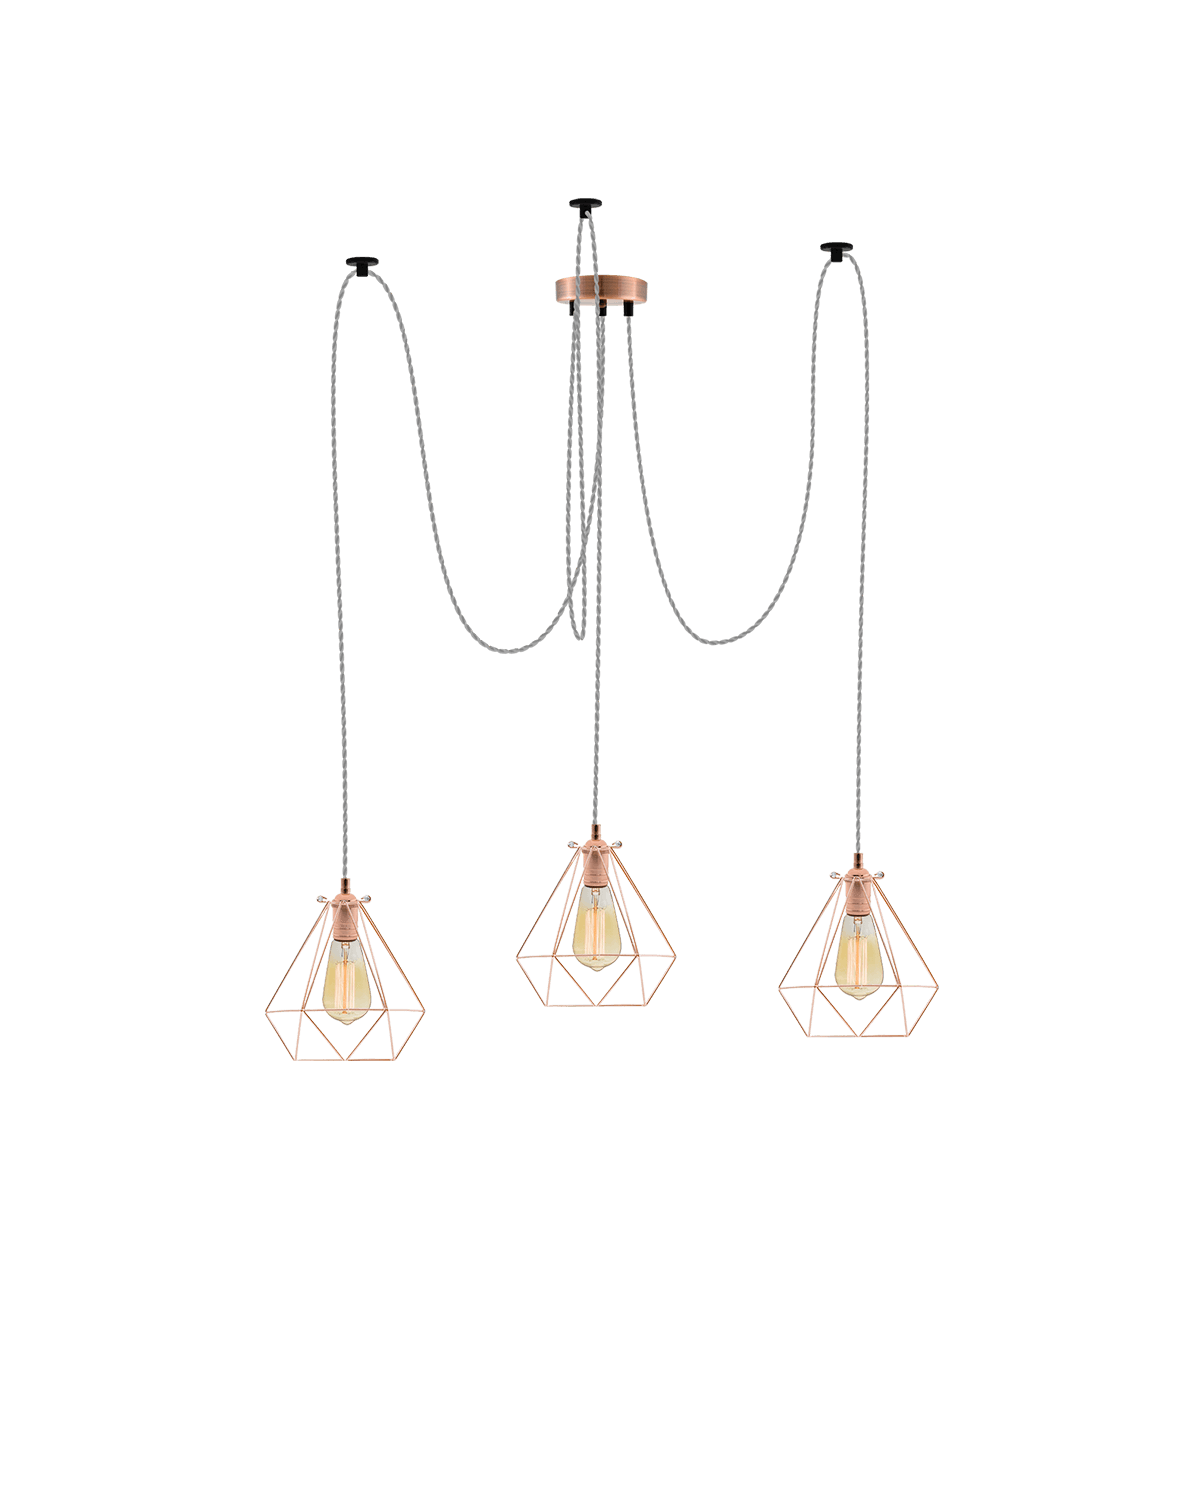 Swag Chandelier: Grey and Copper Diamond Cages Hangout Lighting 3 Swag